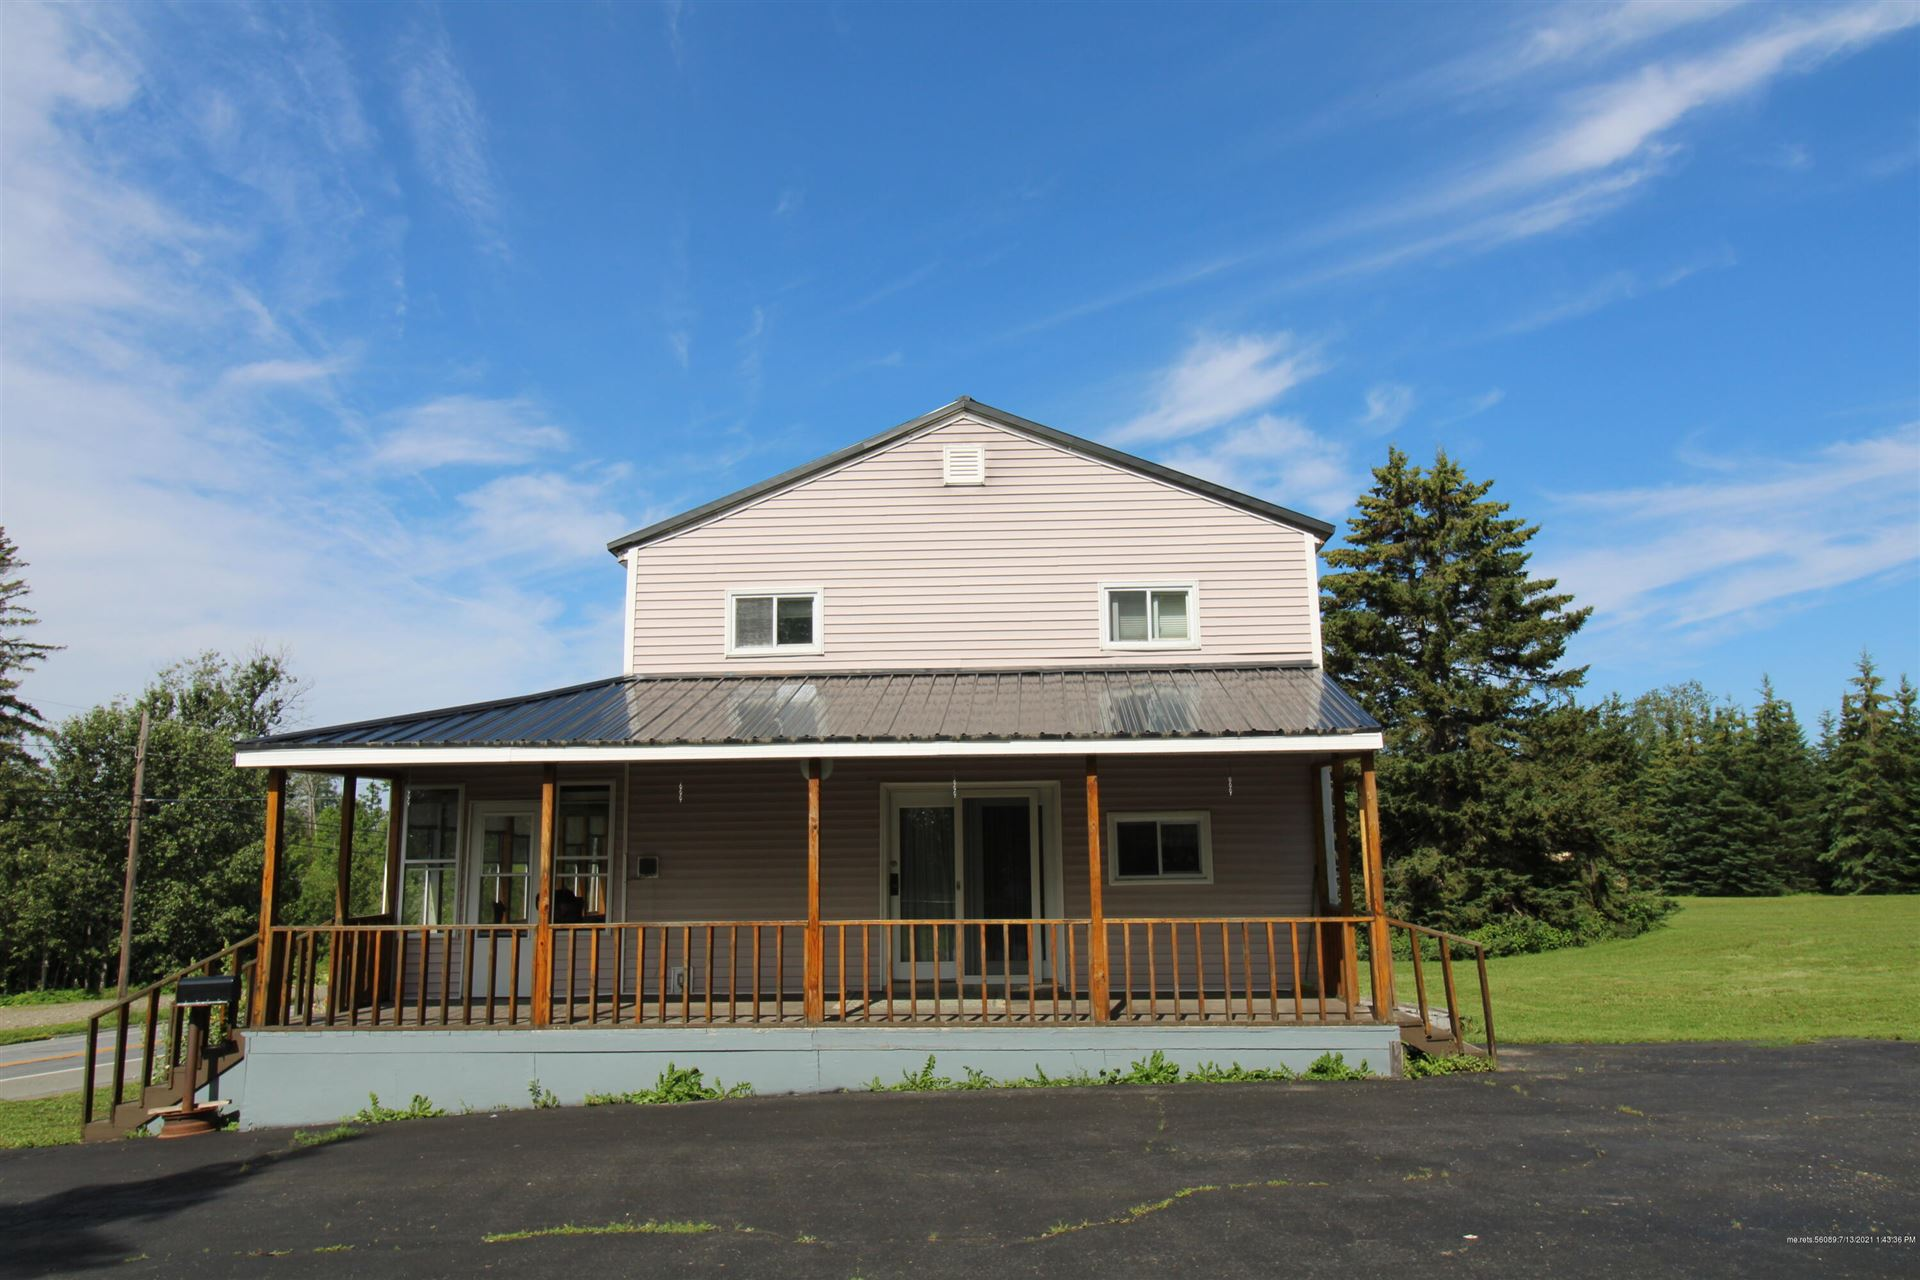 Photo of 79 Woodland Road, Caribou, ME 04736 (MLS # 1500297)